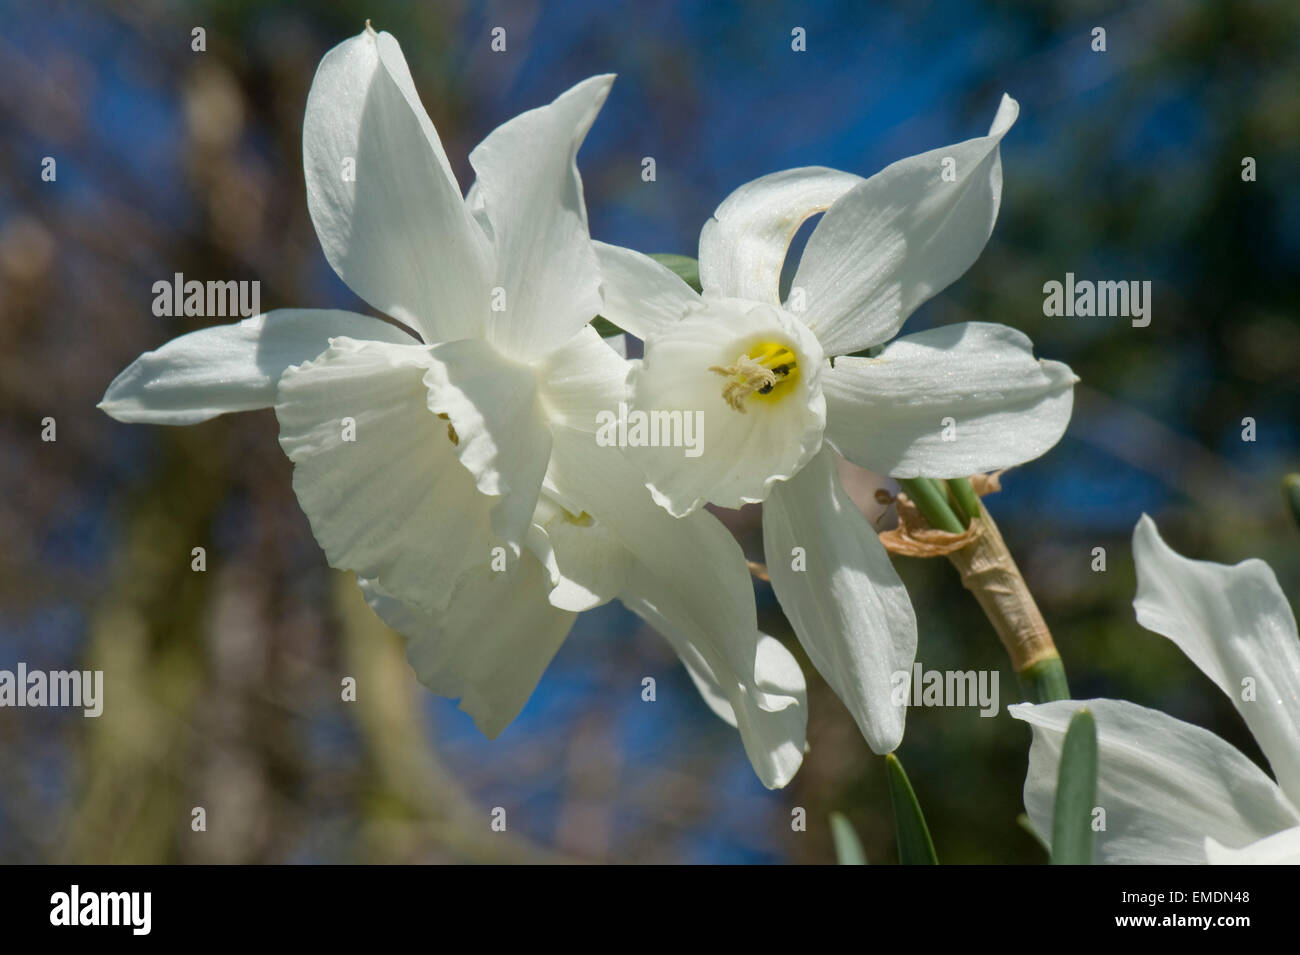 White flowers of a multi-headed Narcissus thalia on a bright spring day, Berkshire, April - Stock Image